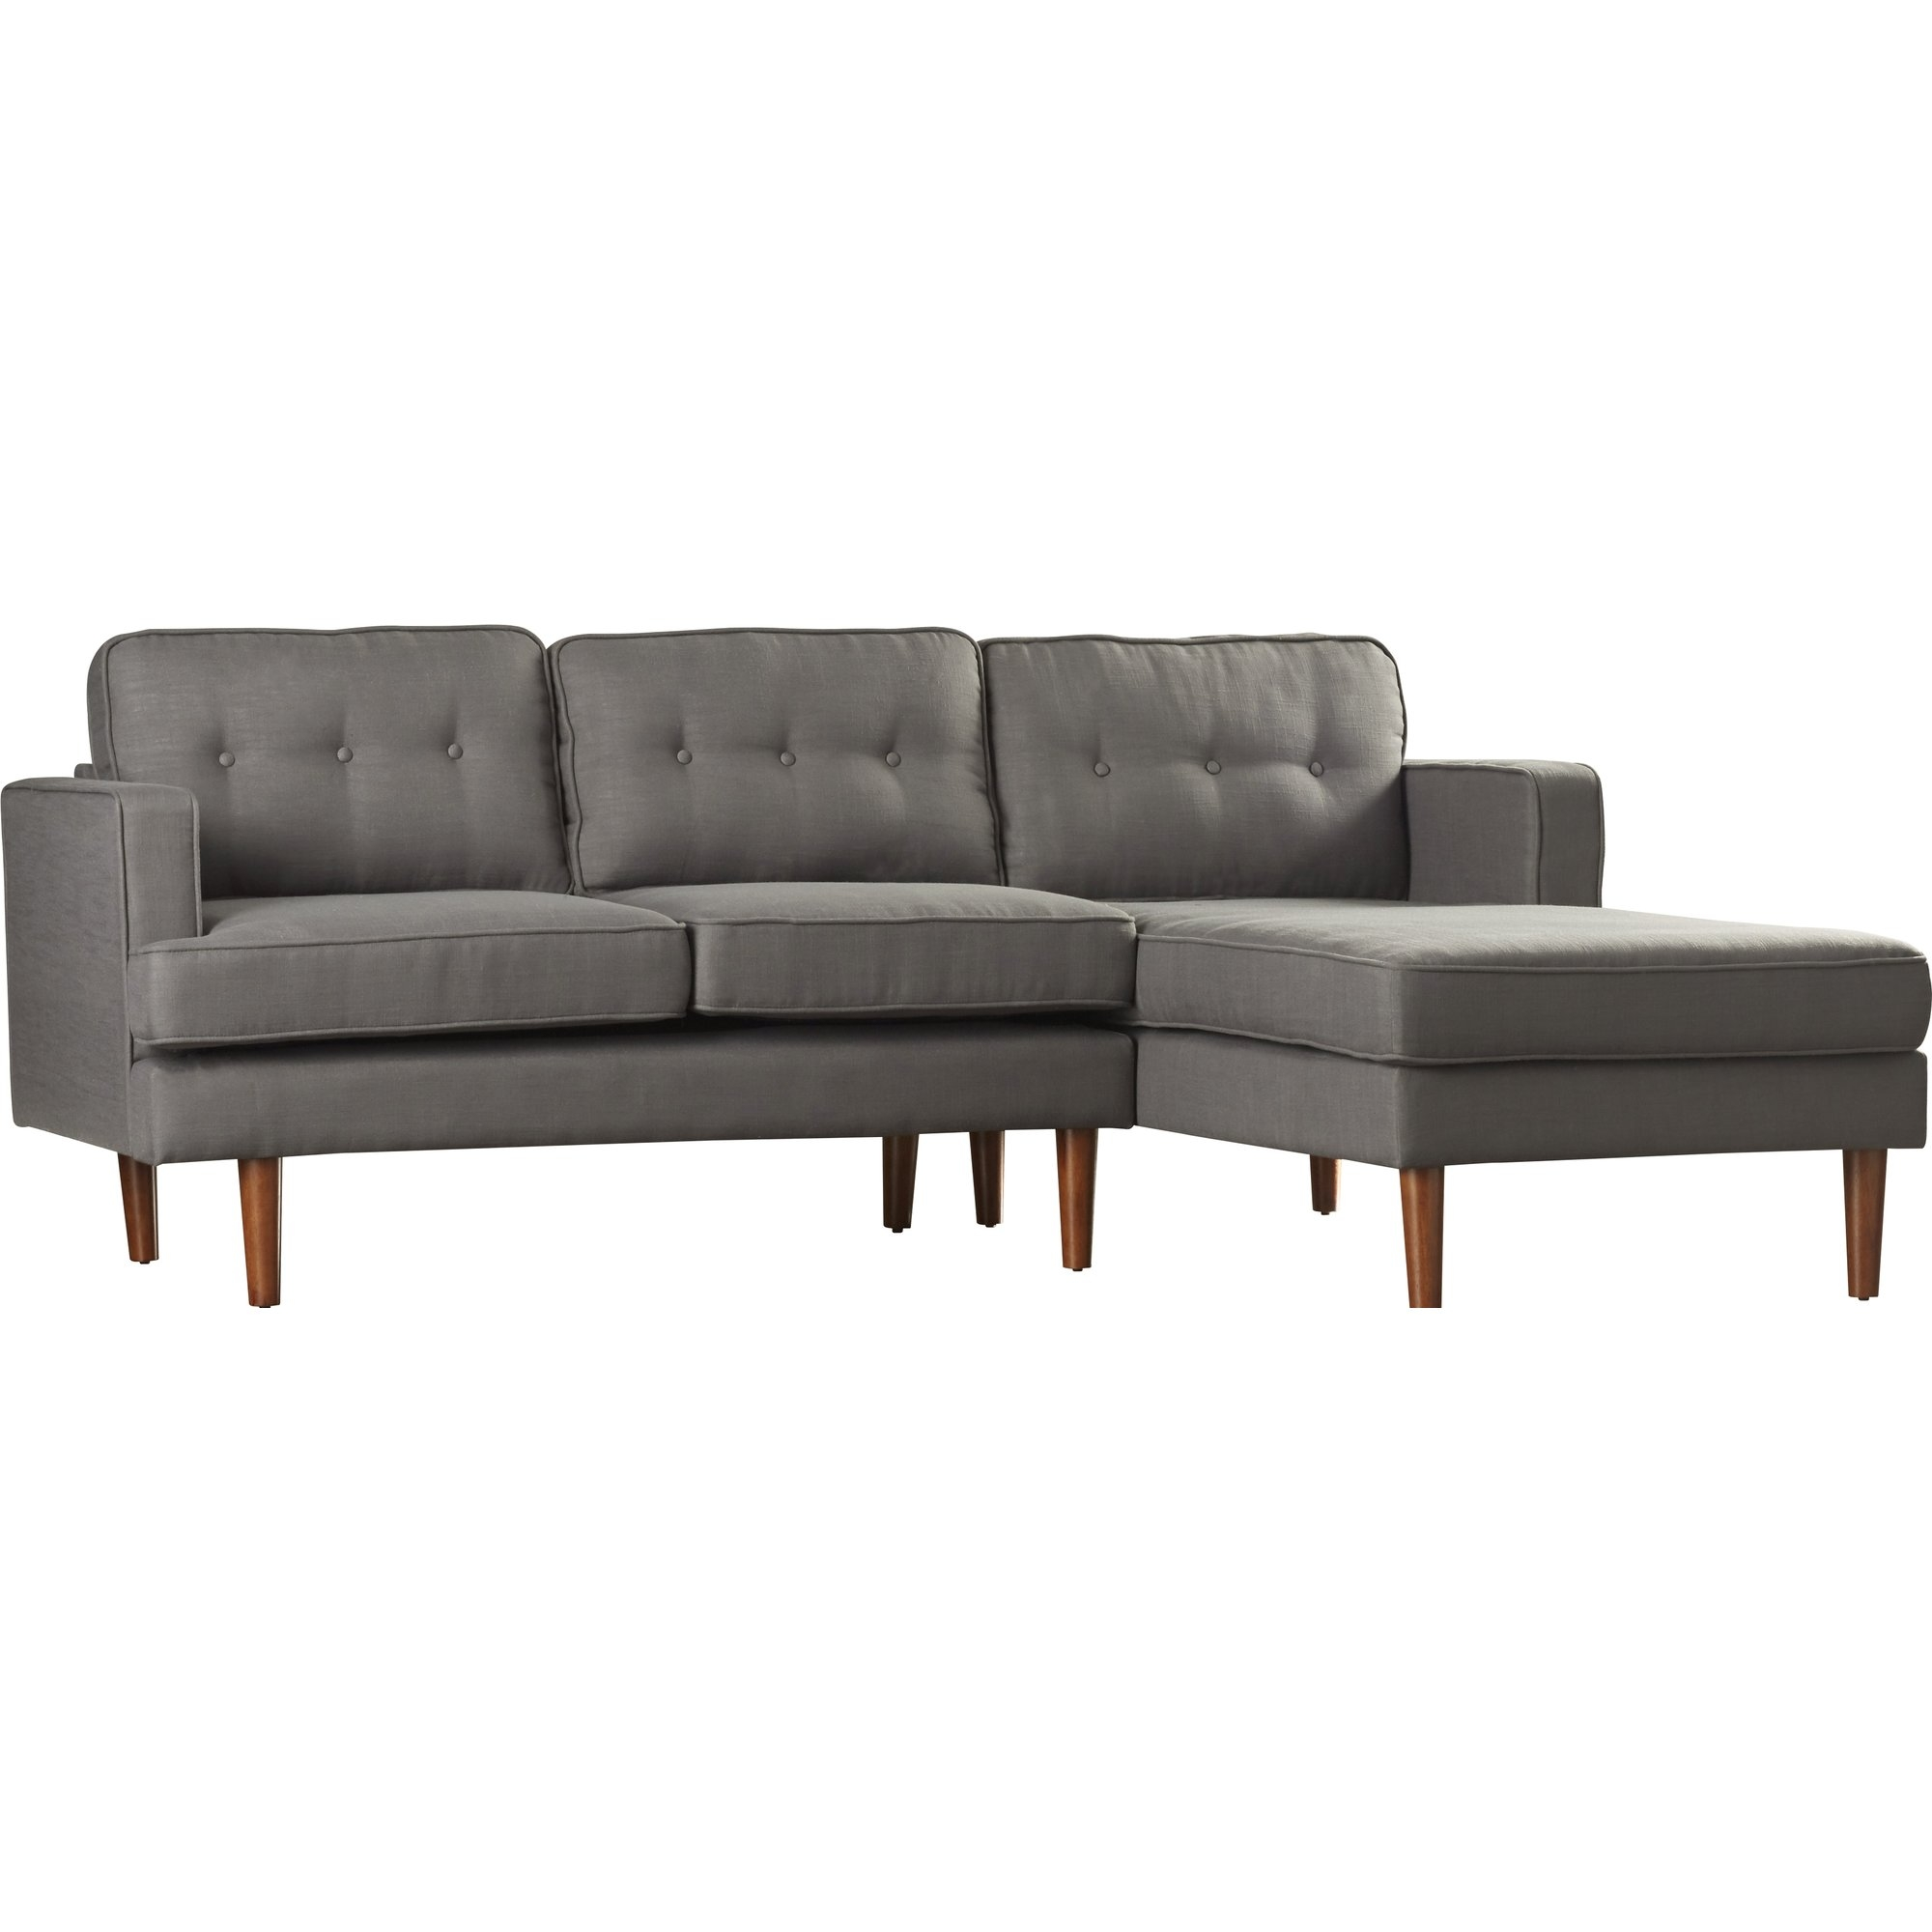 Modern Sectional Sofas Allmodern Throughout Camel Colored Sectional Sofa (Image 13 of 15)